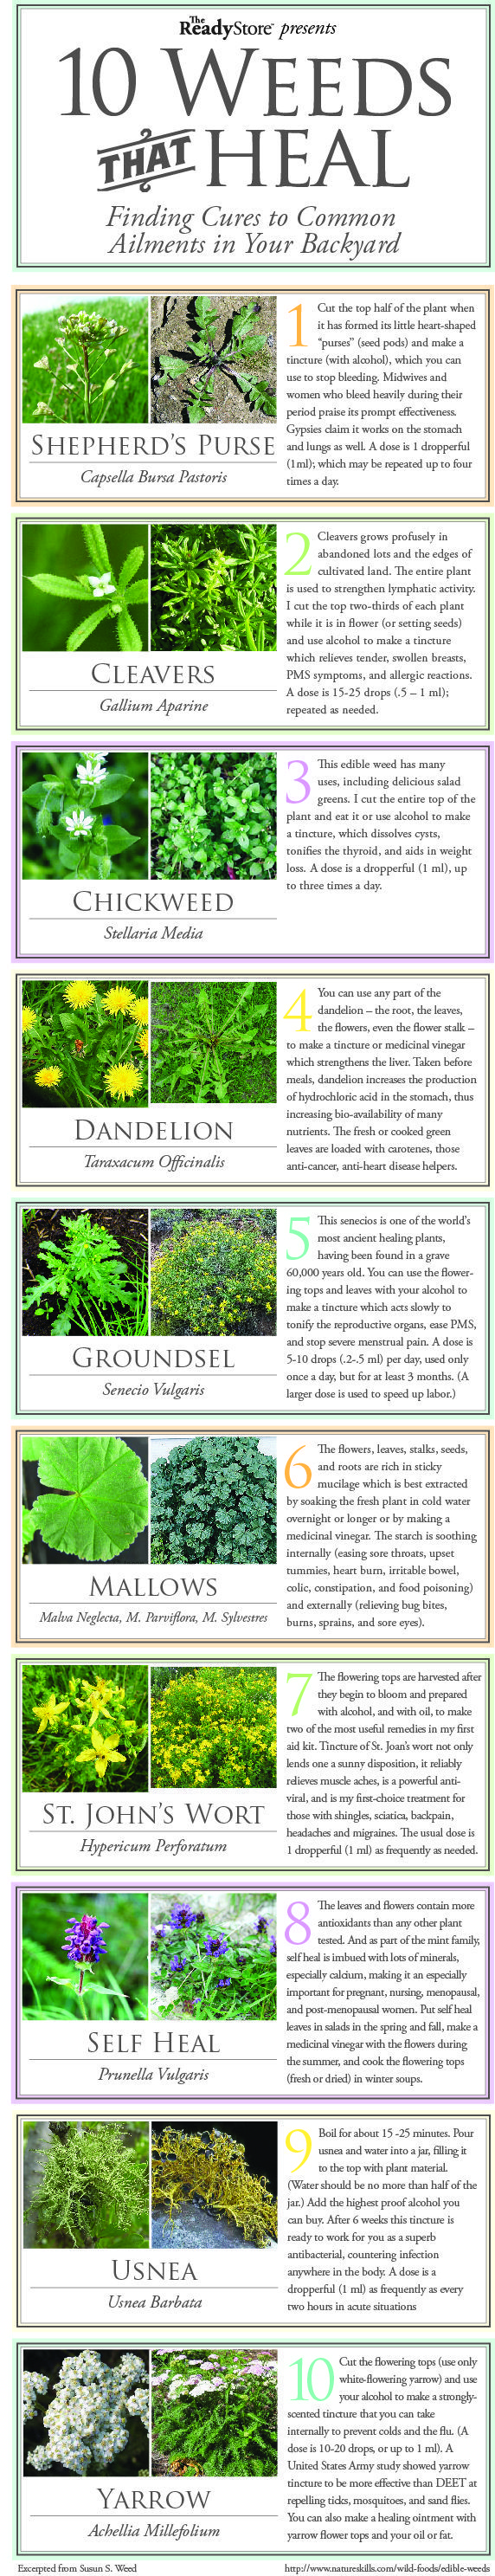 10 weeds that heal: Healing Weed, 10 Weed, Medicine Plants, Healing Plants, Dark Place, 10 Common, Common Weed, Plants That Healing, Herbal Plants